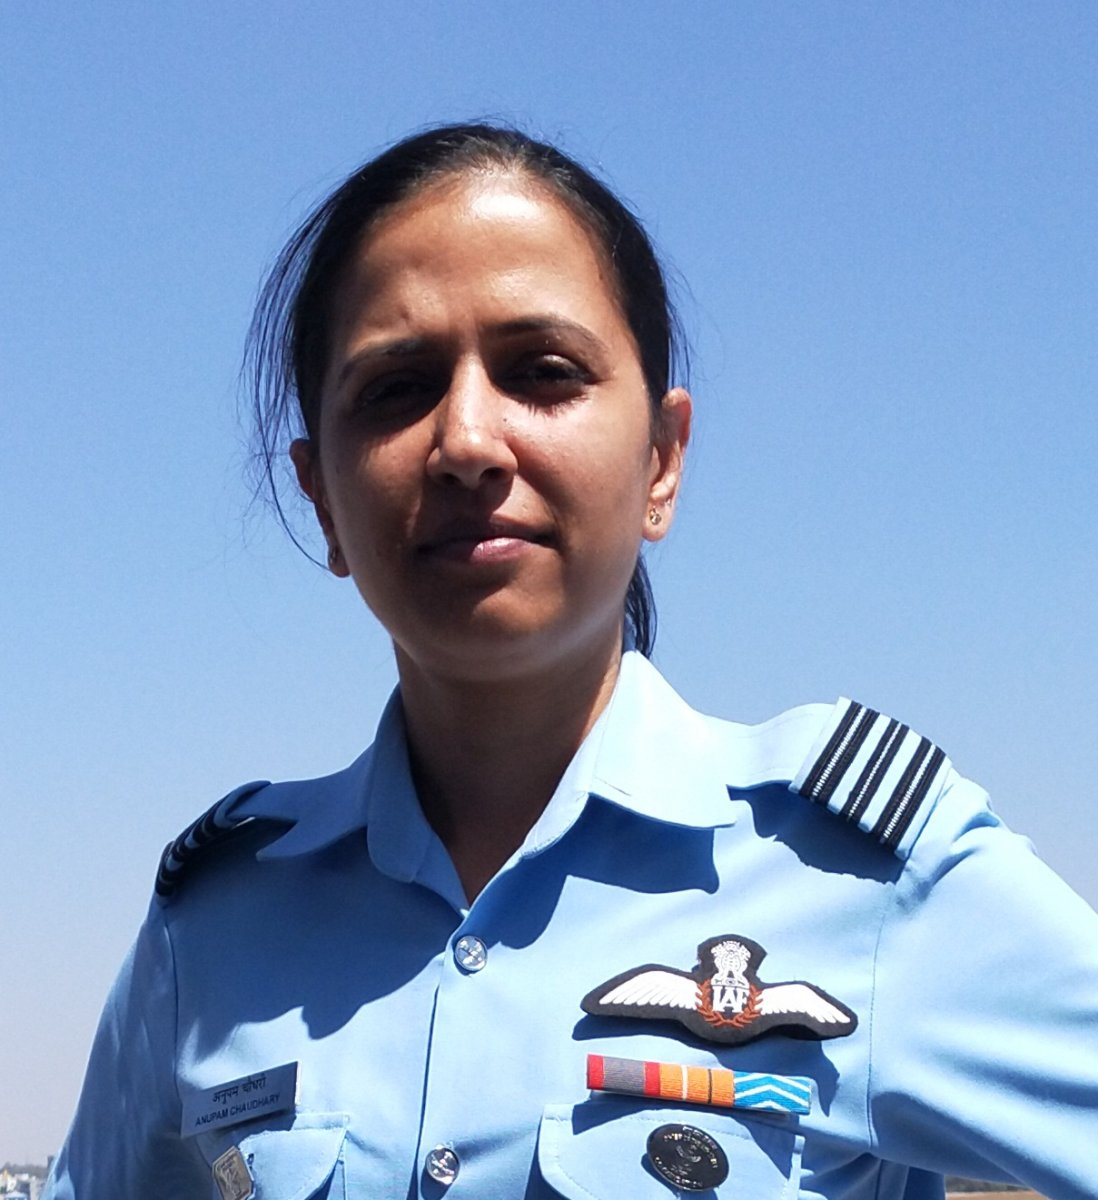 Women power in the Air Force   Deccan Herald